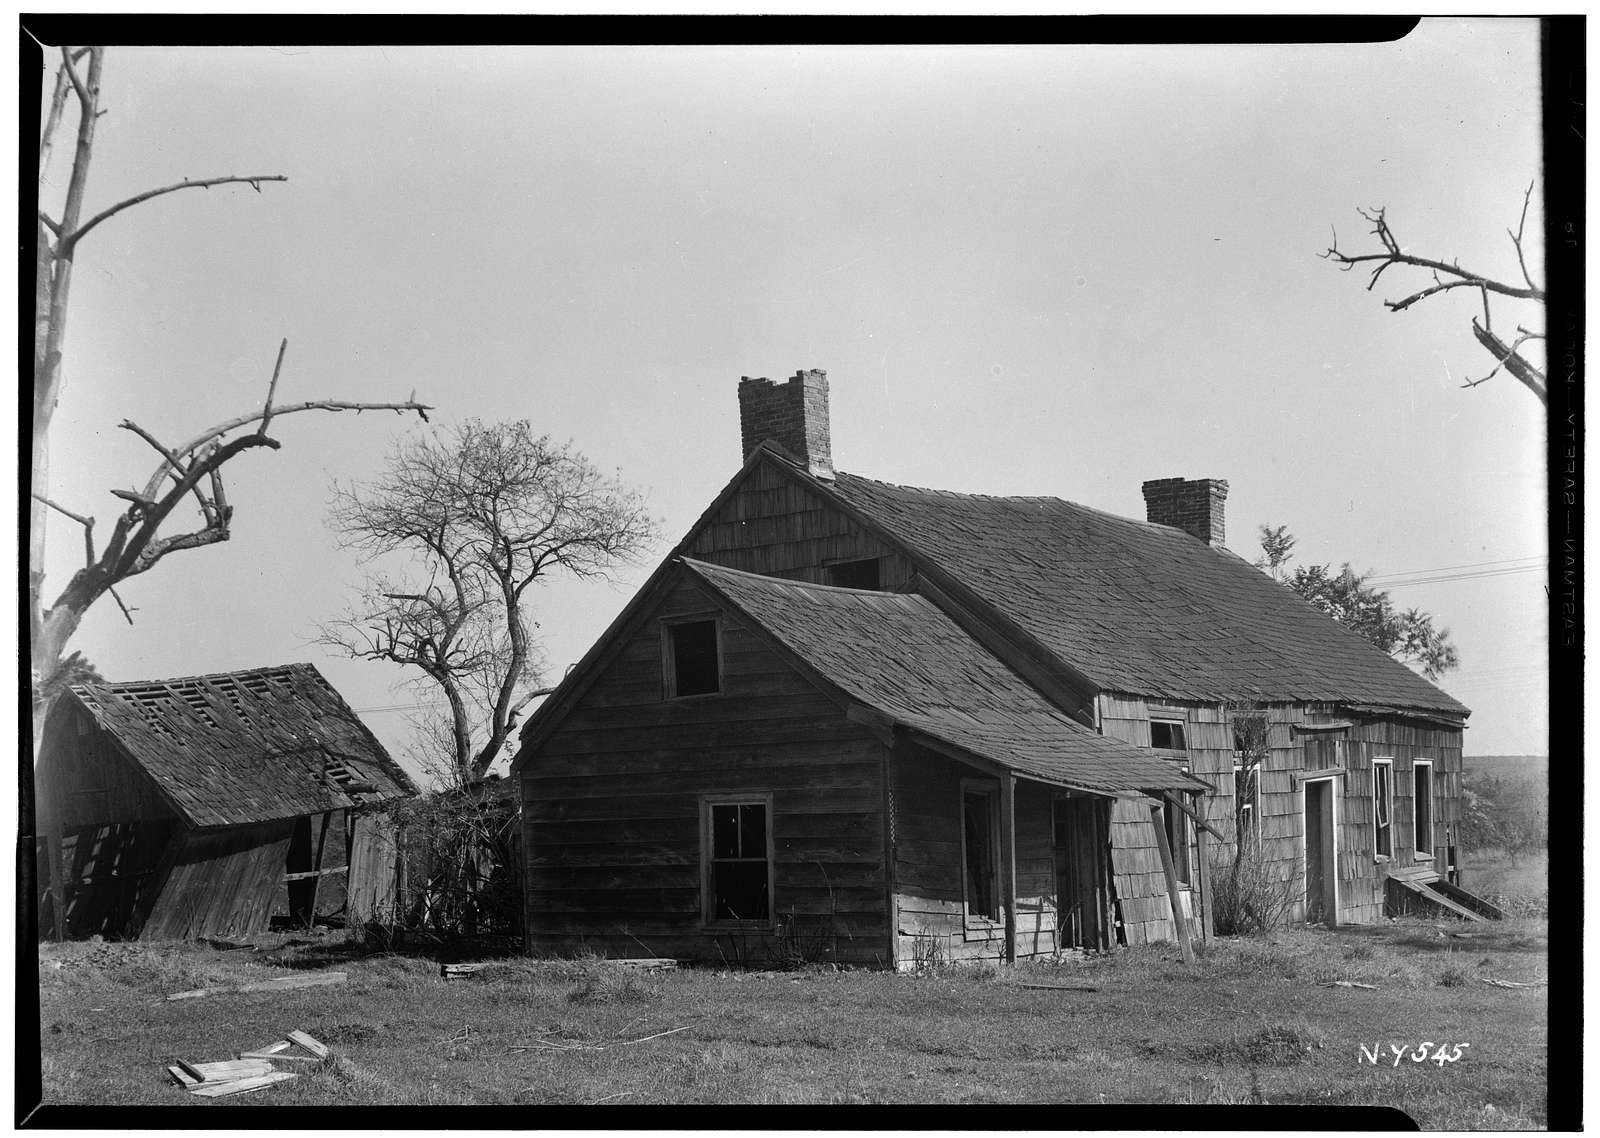 Isaac Smith Farmhouse, Upper Hollow & Pine Lawn Roads, Melville, Suffolk County, NY